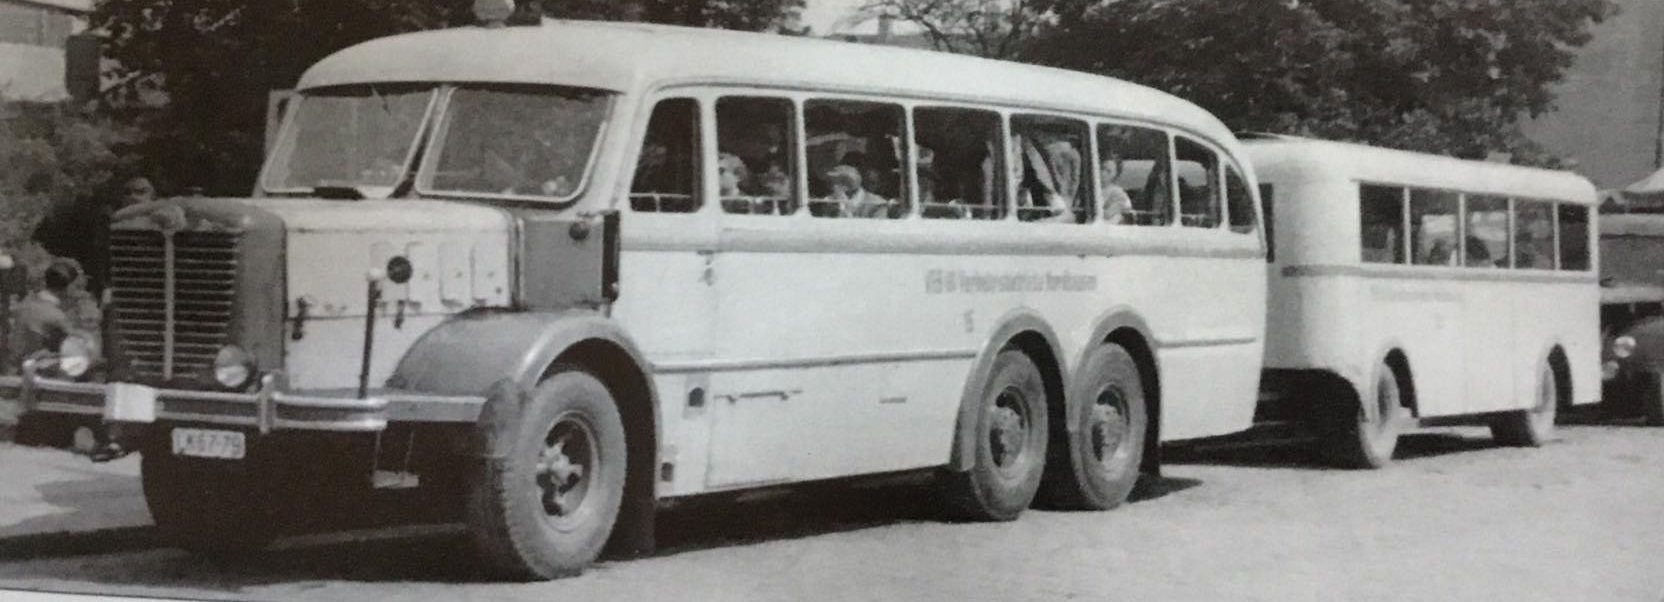 Bussing-Ex-LKW-6X4